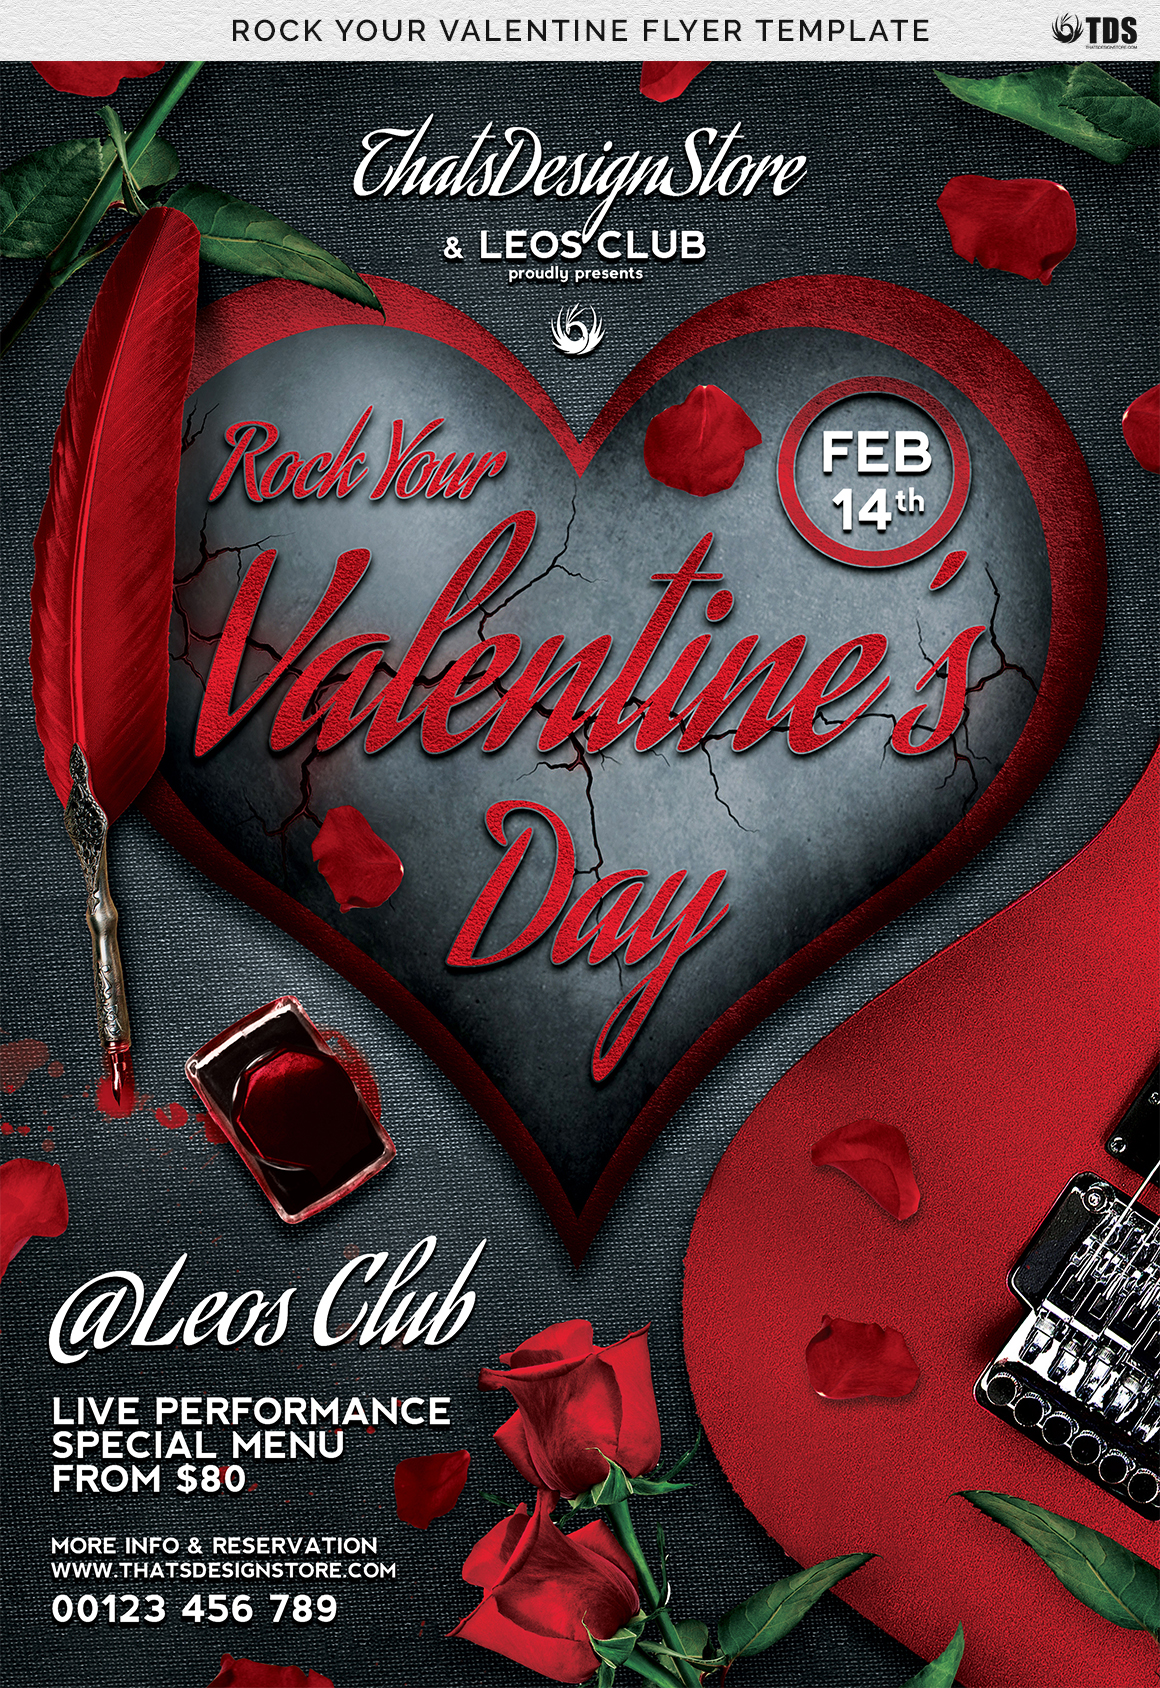 Rock Your Valentine Flyer Template example image 7